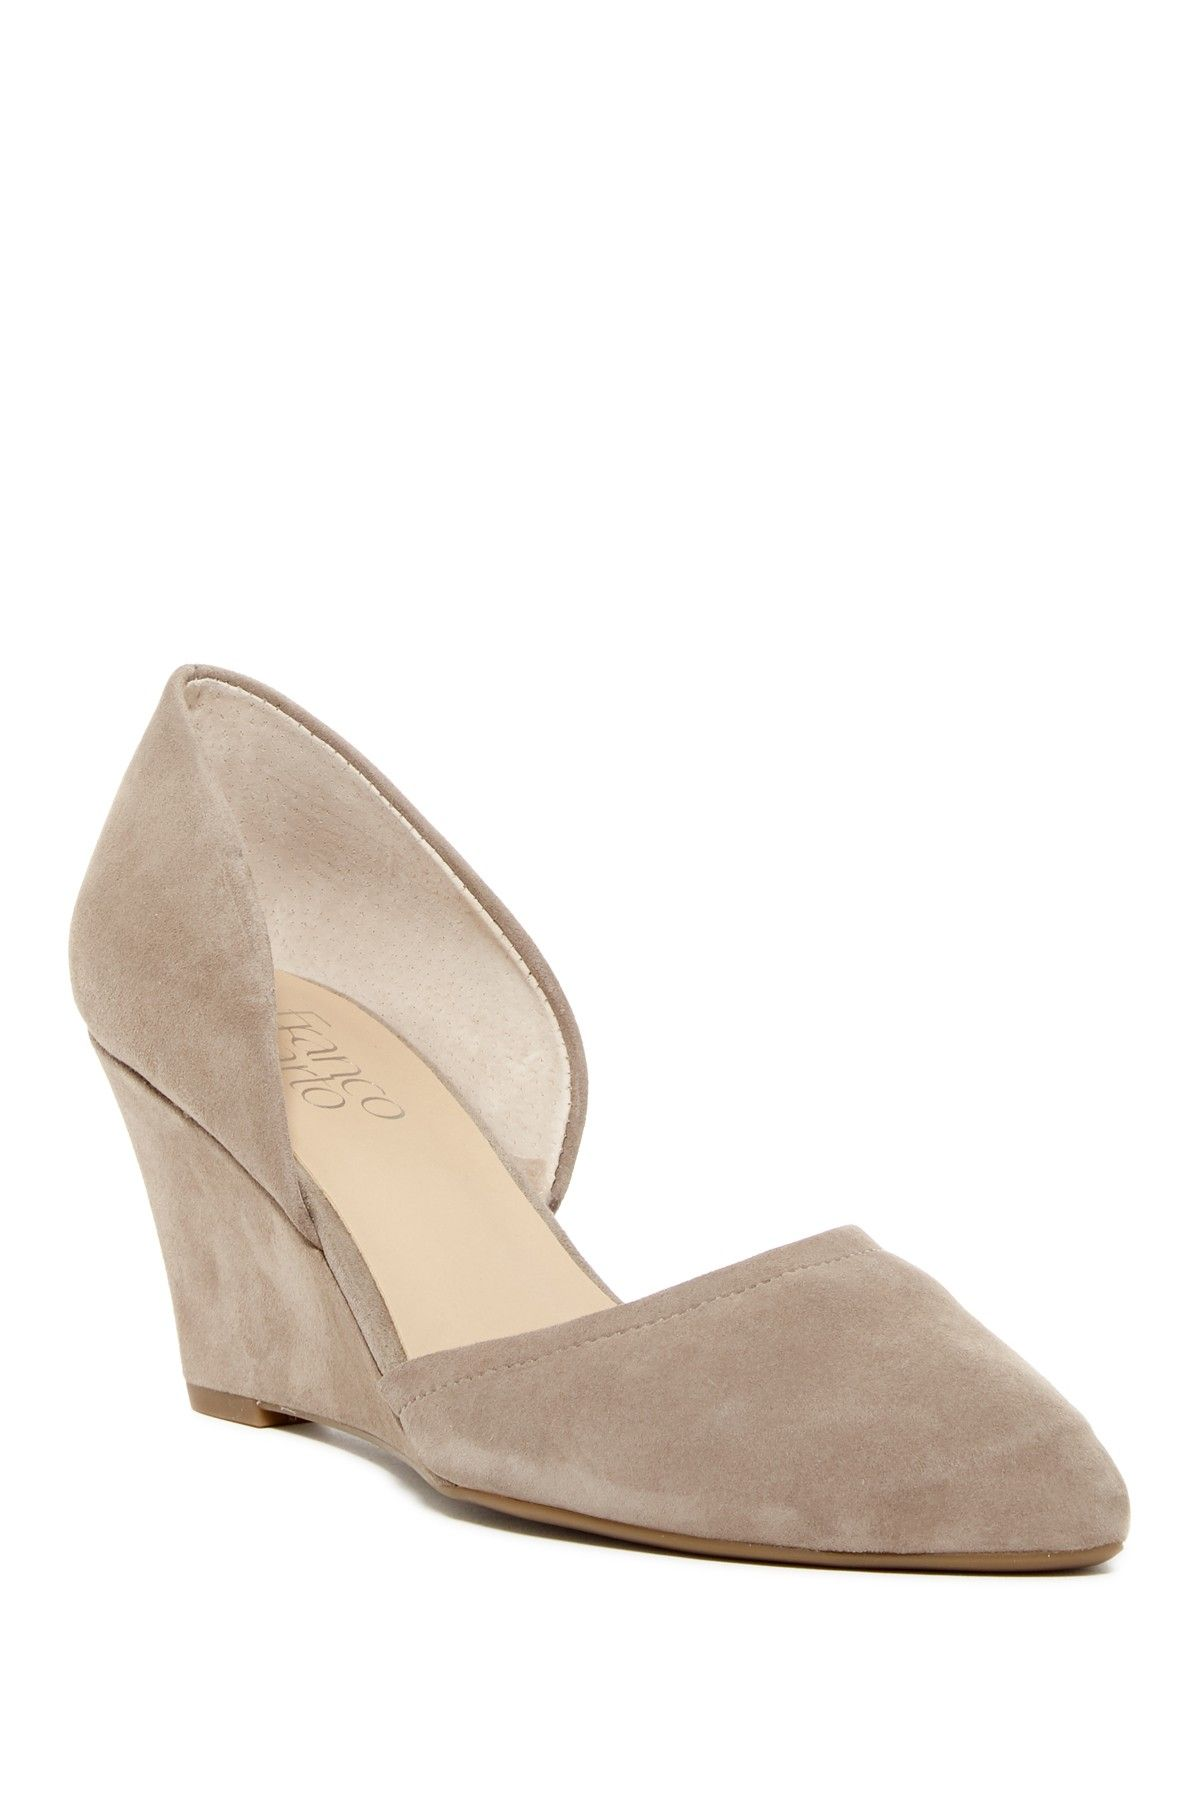 b52186f5c Fenway Wedge Pump - by Franco Sarto on @nordstrom_rack $49.97 - super  comfortable Shoes Heels